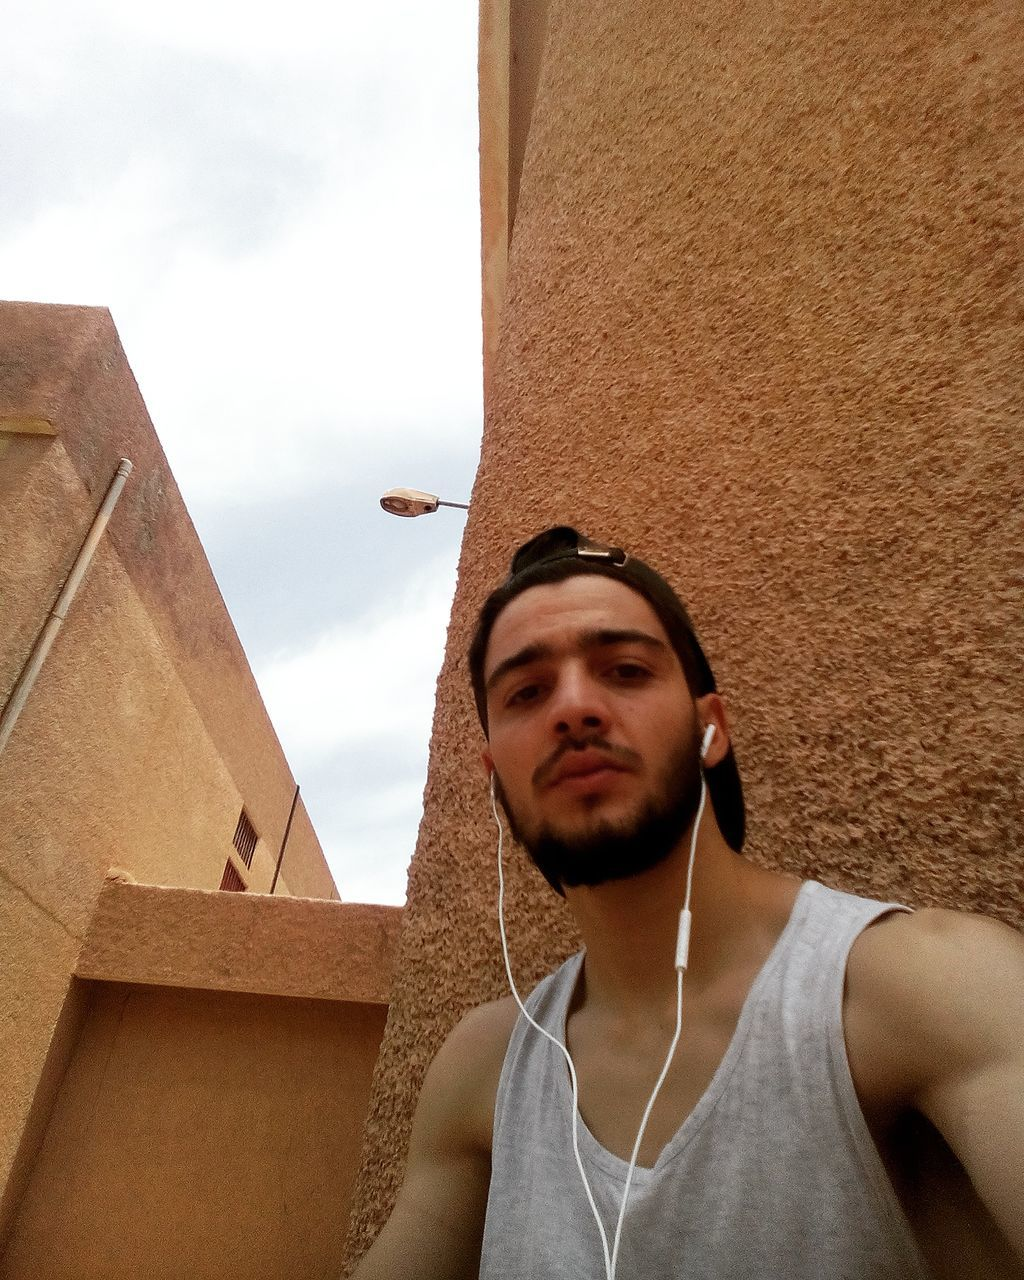 young adult, one person, young men, real people, leisure activity, lifestyles, day, listening, built structure, casual clothing, outdoors, standing, one young man only, architecture, low angle view, music, men, sky, young women, building exterior, one man only, people